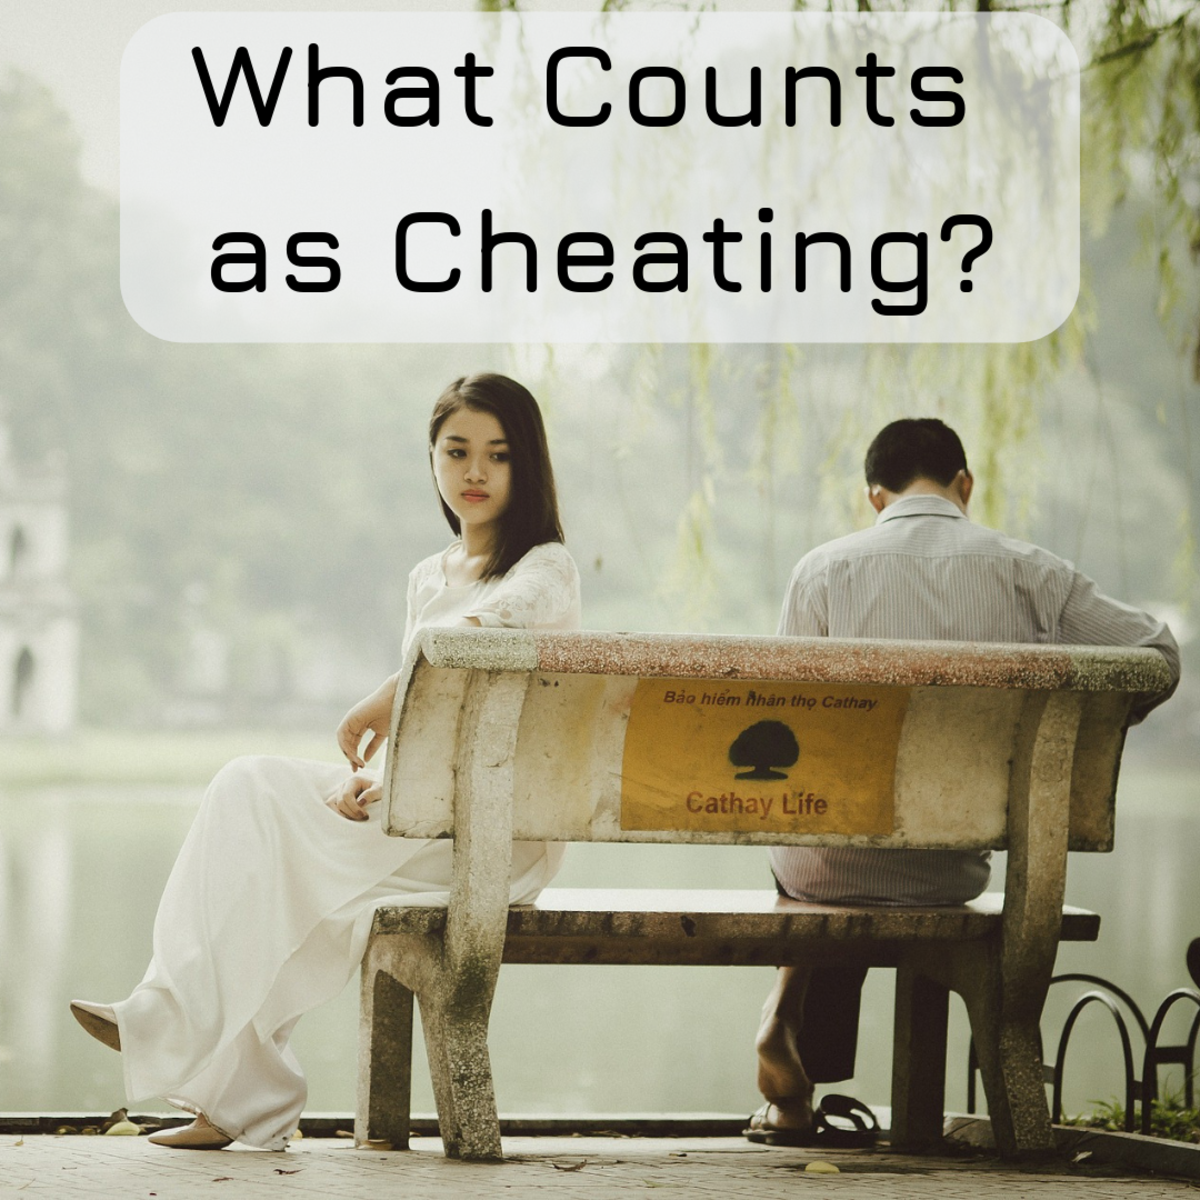 flirting vs cheating cyber affairs online courses near me